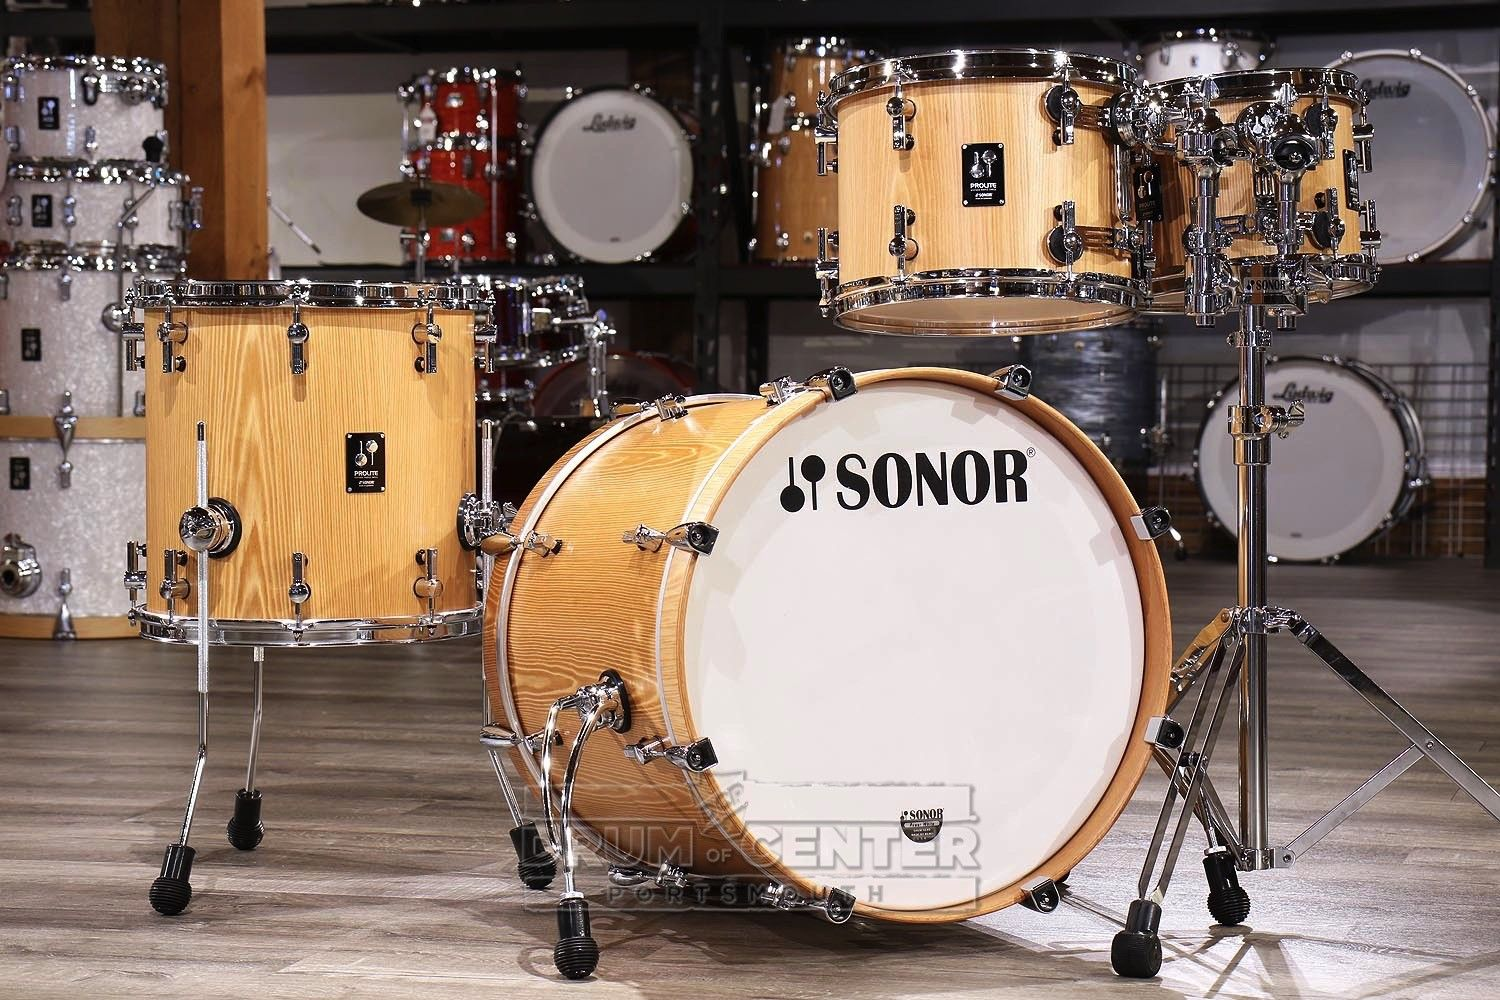 Sonor Prolite Studio Drum Set Natural Finish - Blowout Deal in 2019